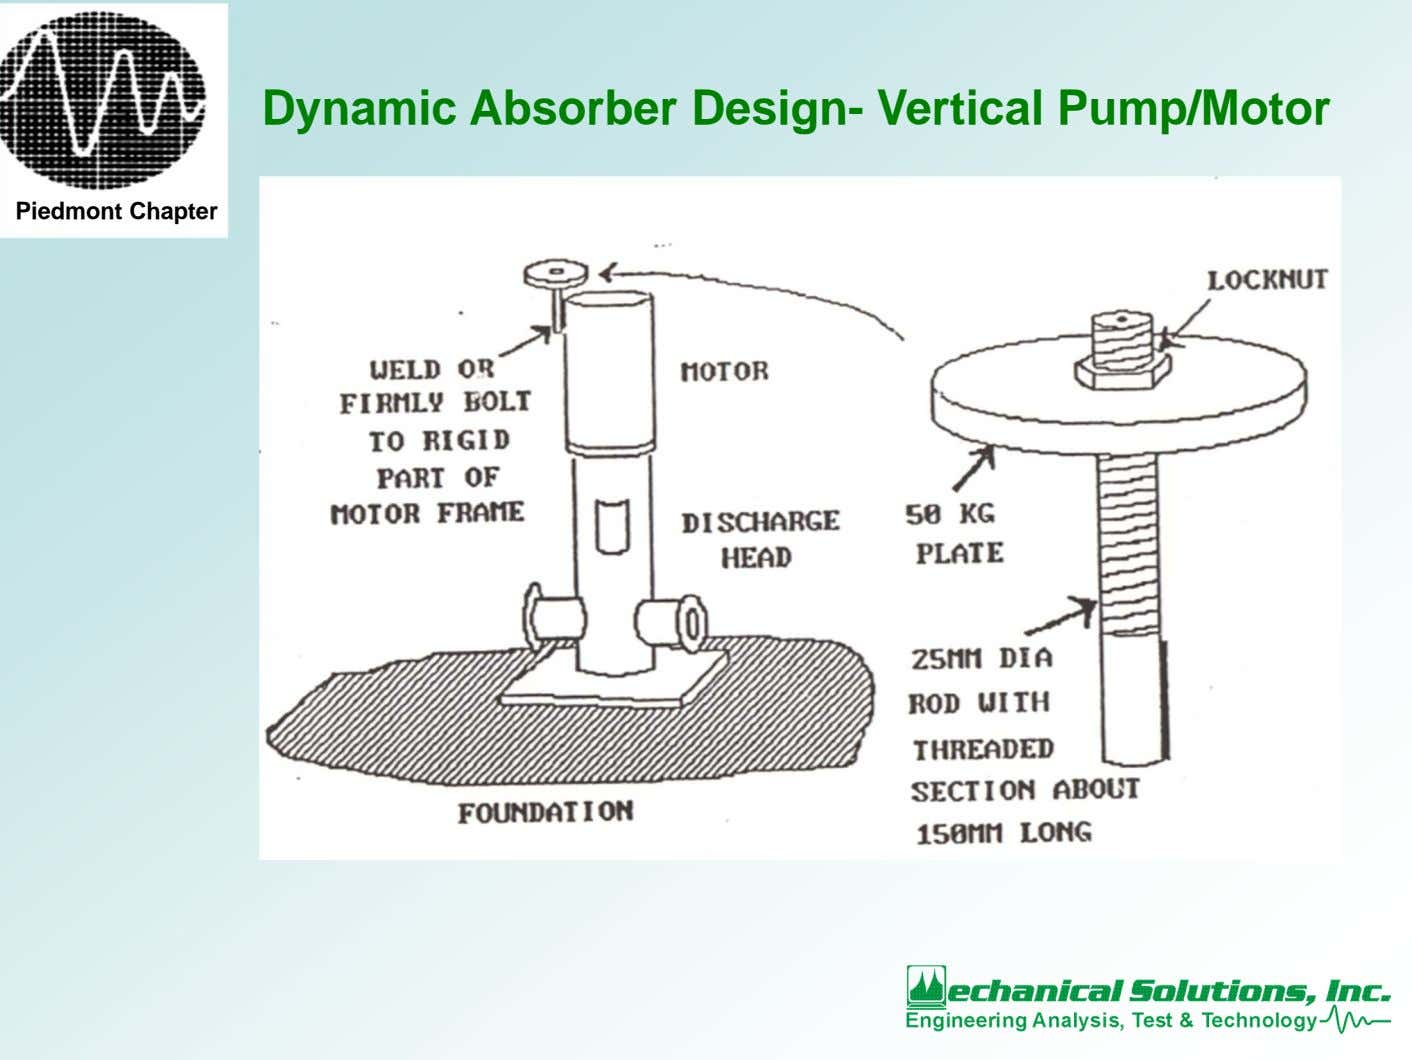 Dynamic Absorber Design- Vertical Pump/Motor Piedmont Chapter